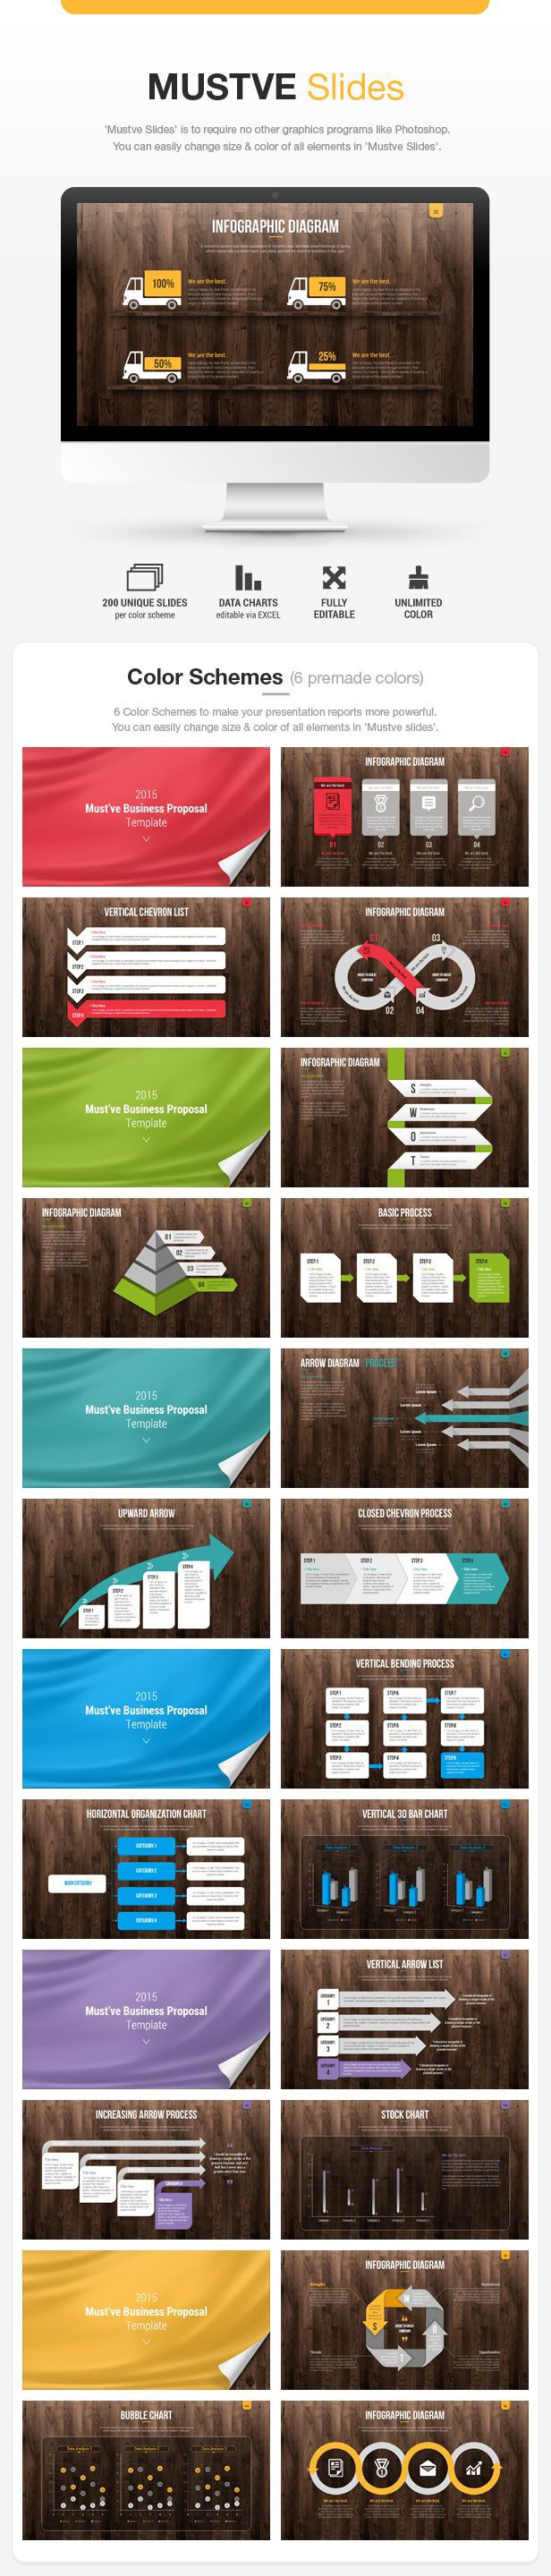 Mustve Slides - Business Powerpoint Templates design / graph / diagram / icon / keynote / infographic